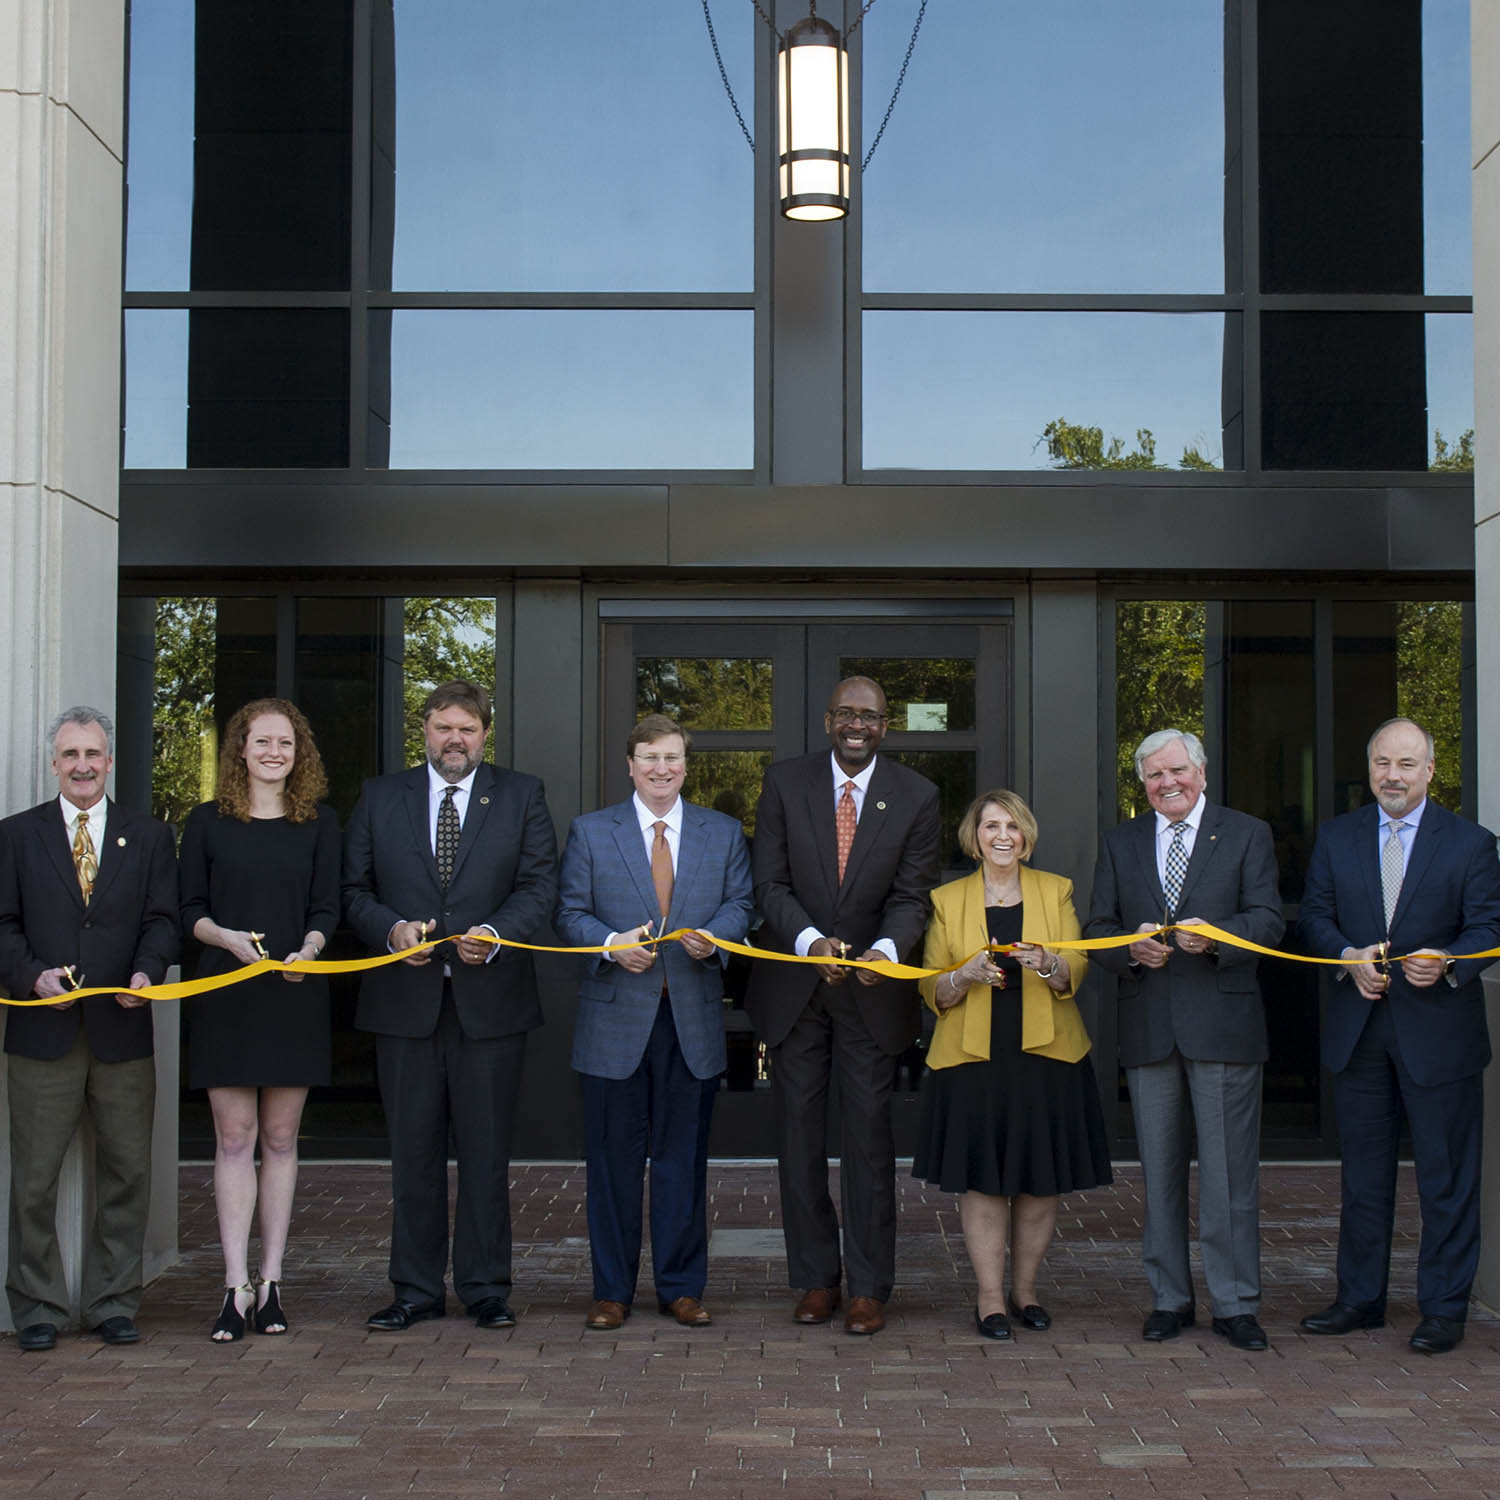 Southern Miss Officially Dedicates New Nursing Building – Asbury Hall